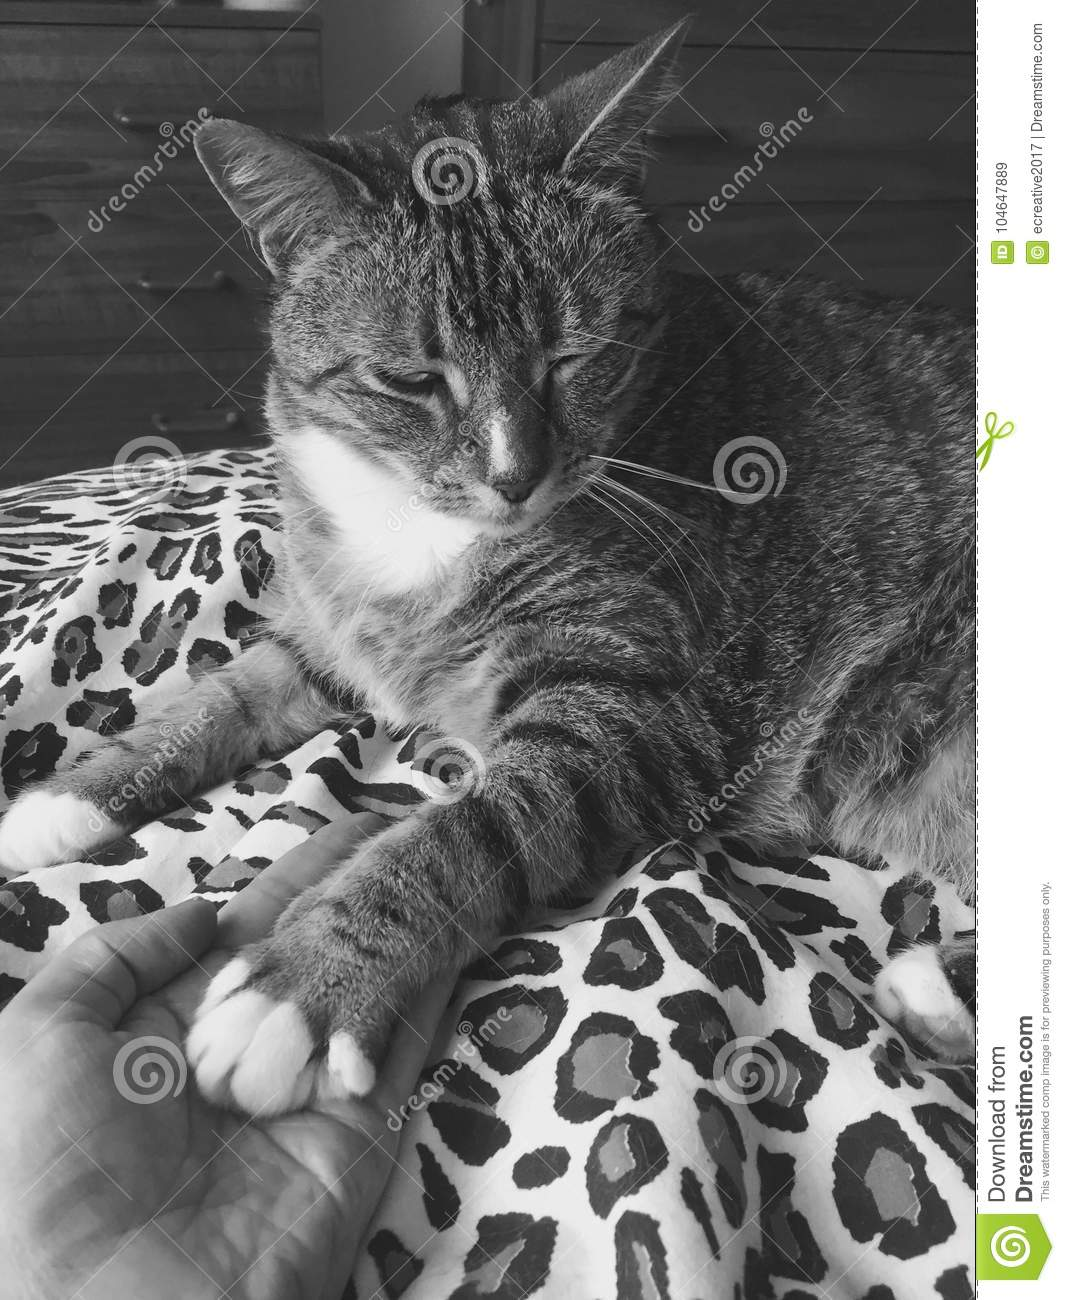 Winking Male Cat Leopard Markings Black And White Stock Image Image Of Male Stripes 104647889